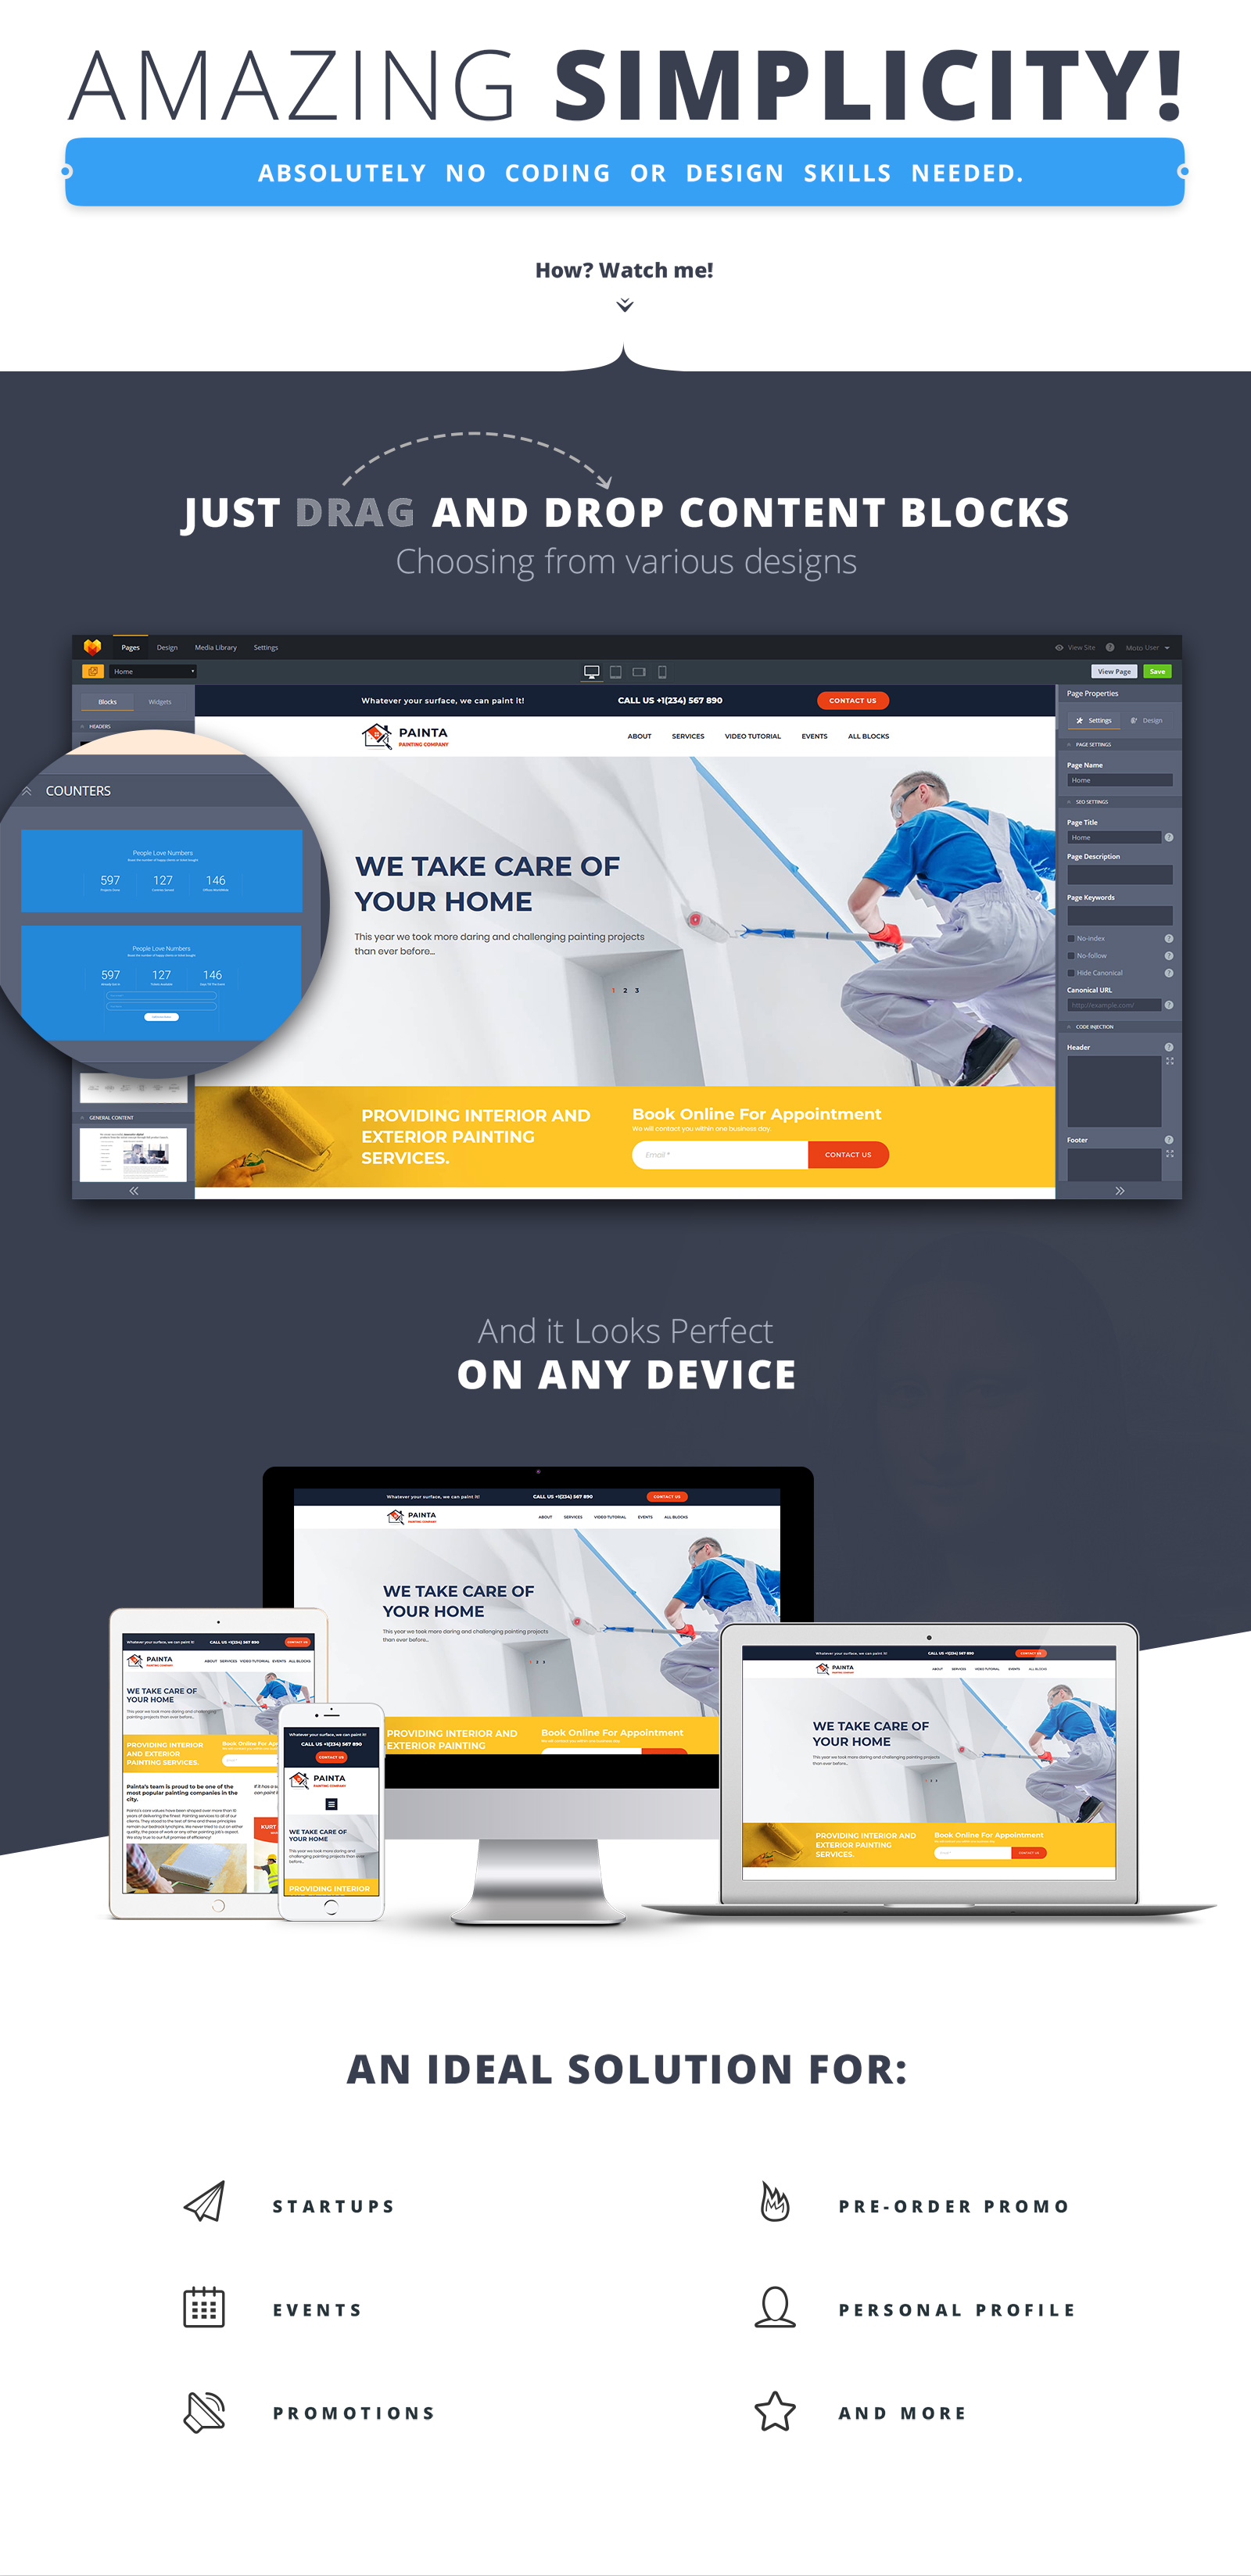 Painta - Painting Company MotoCMS Landing Page Template